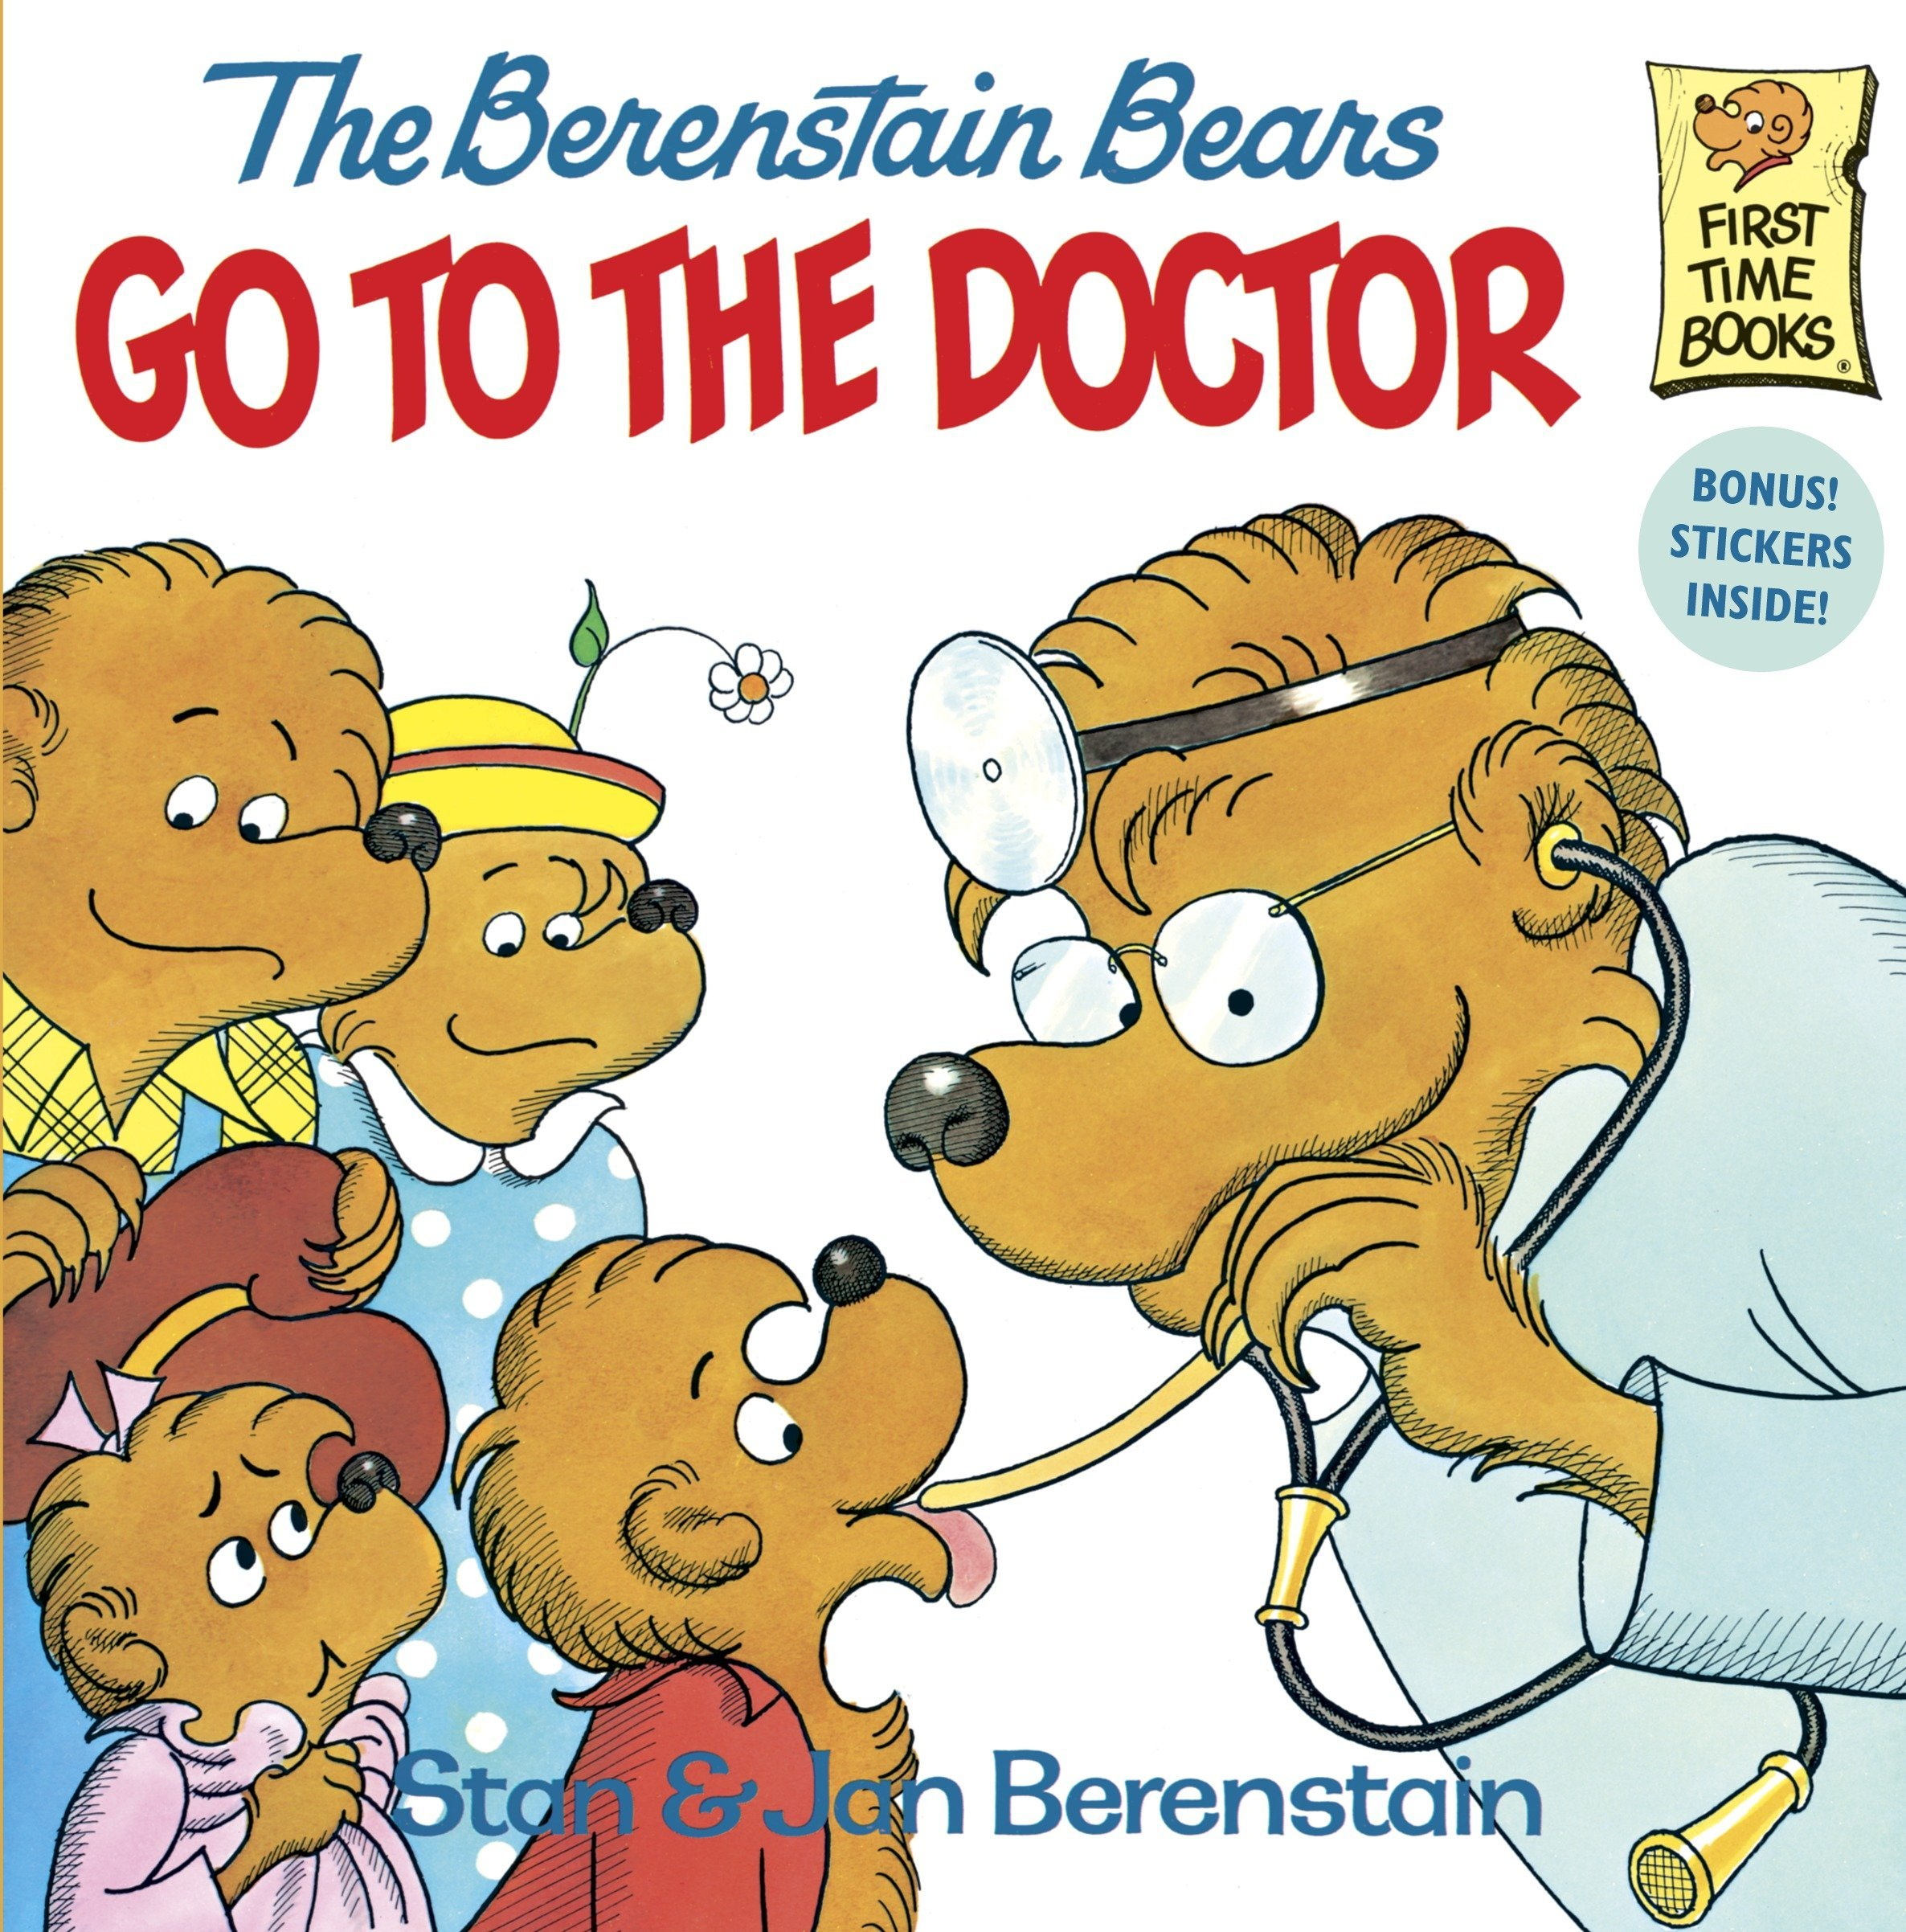 going to the doctor - books for kids about the doctor- shegotguts.jpg